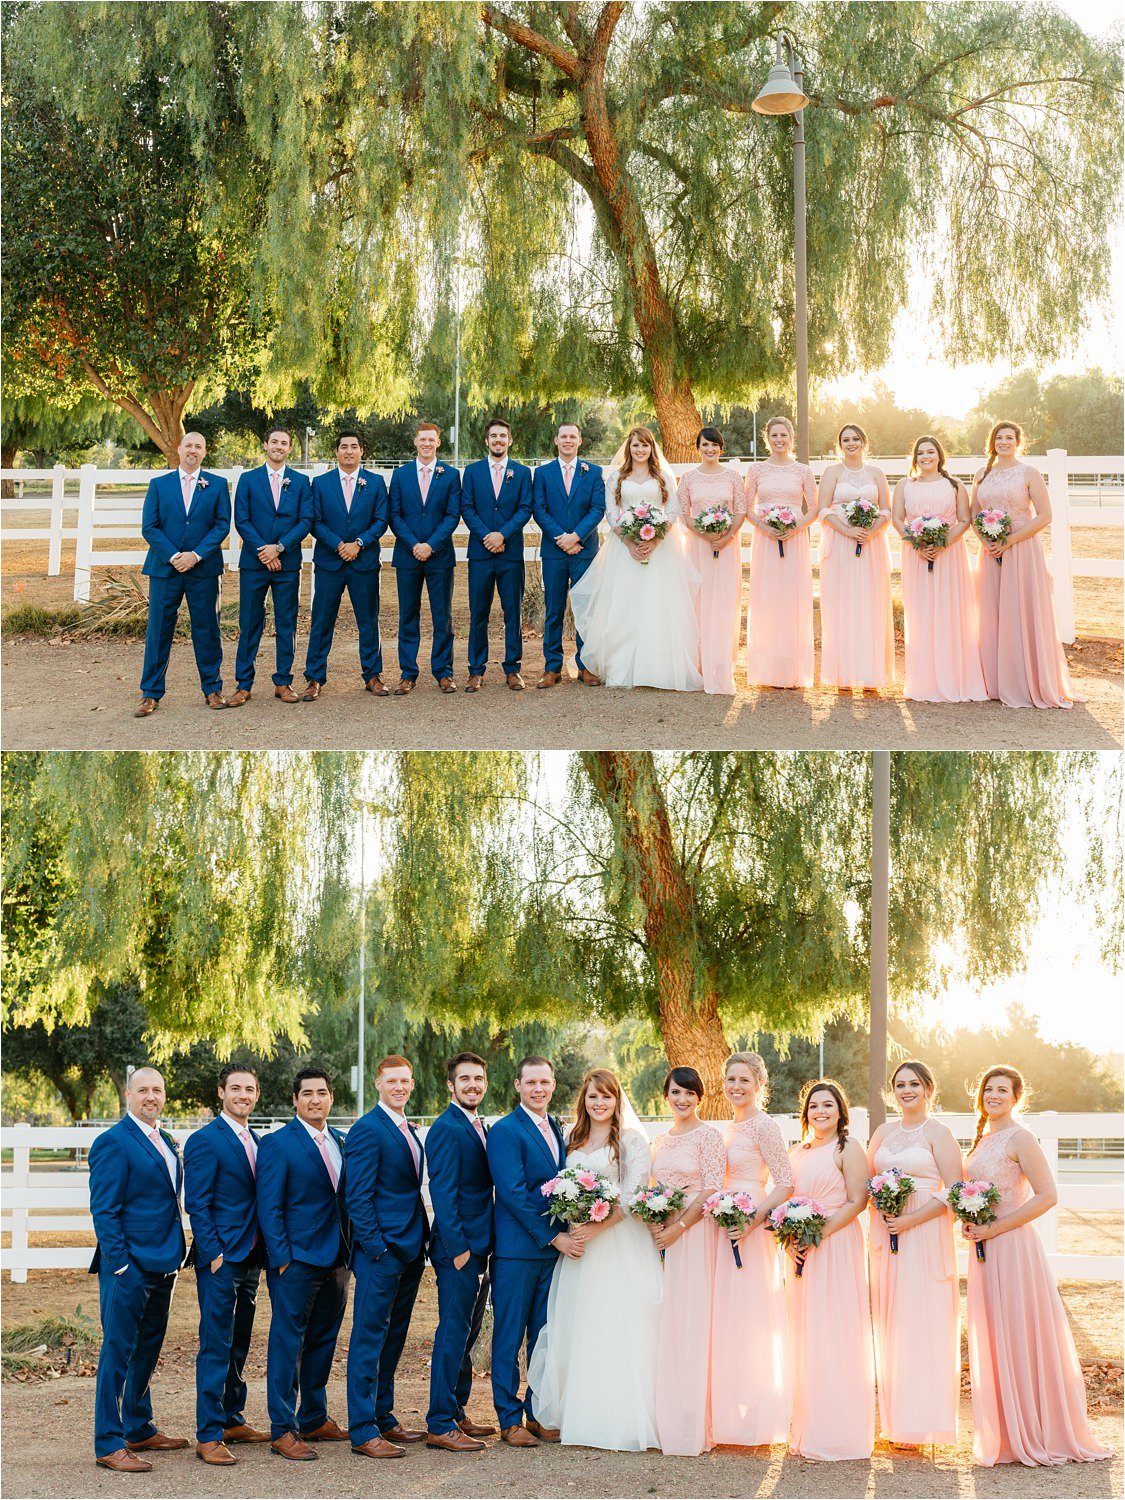 Wedding Party Photos - Fall Wedding in California - https://brittneyhannonphotography.com